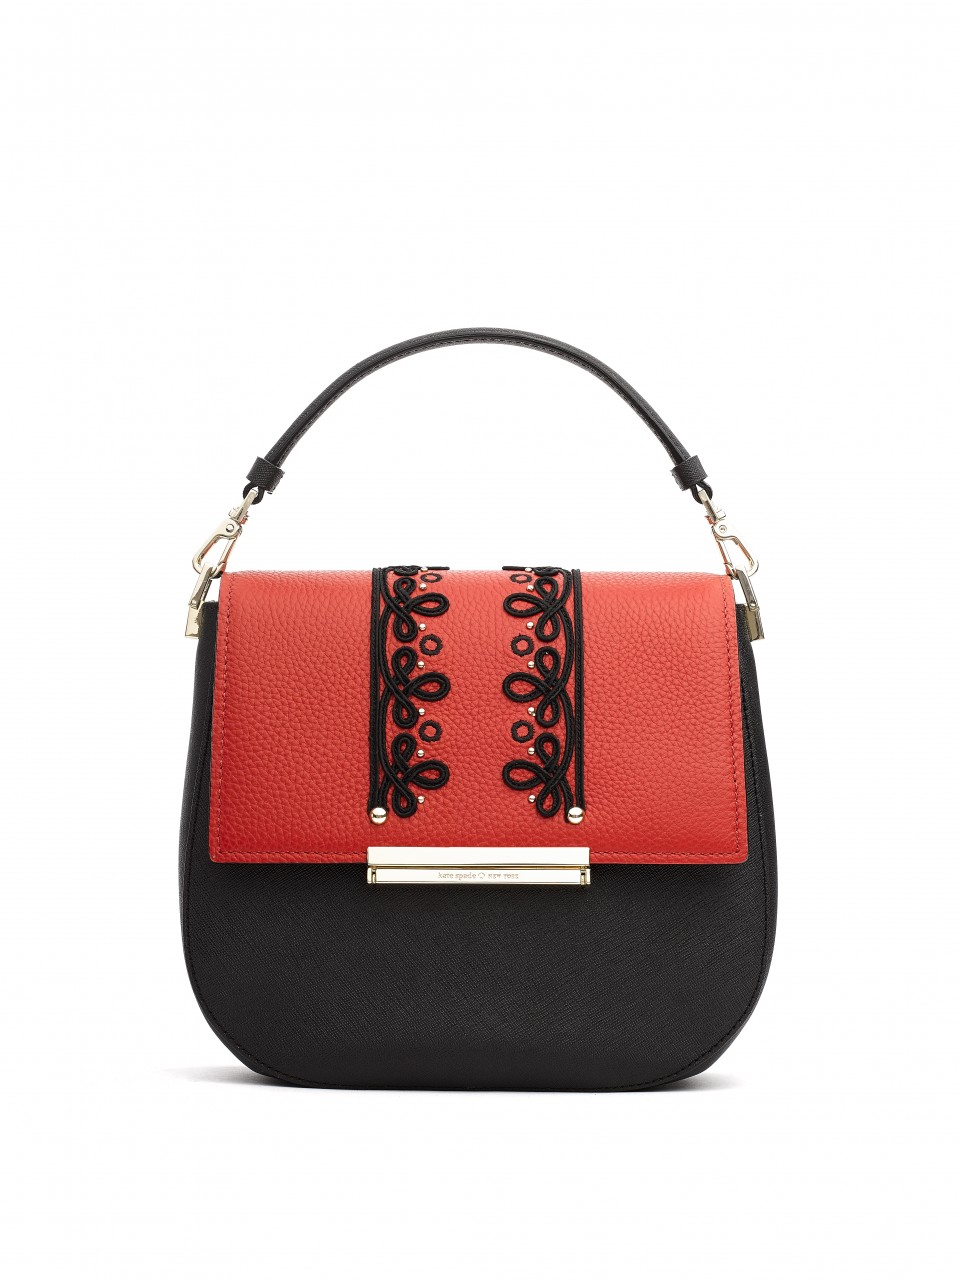 197d5f9006c0b There are even more ways to personalize with Kate Spade New York. The Kate  Spade New York personalisation shop, launched for holiday 2016 with the  Give it a ...